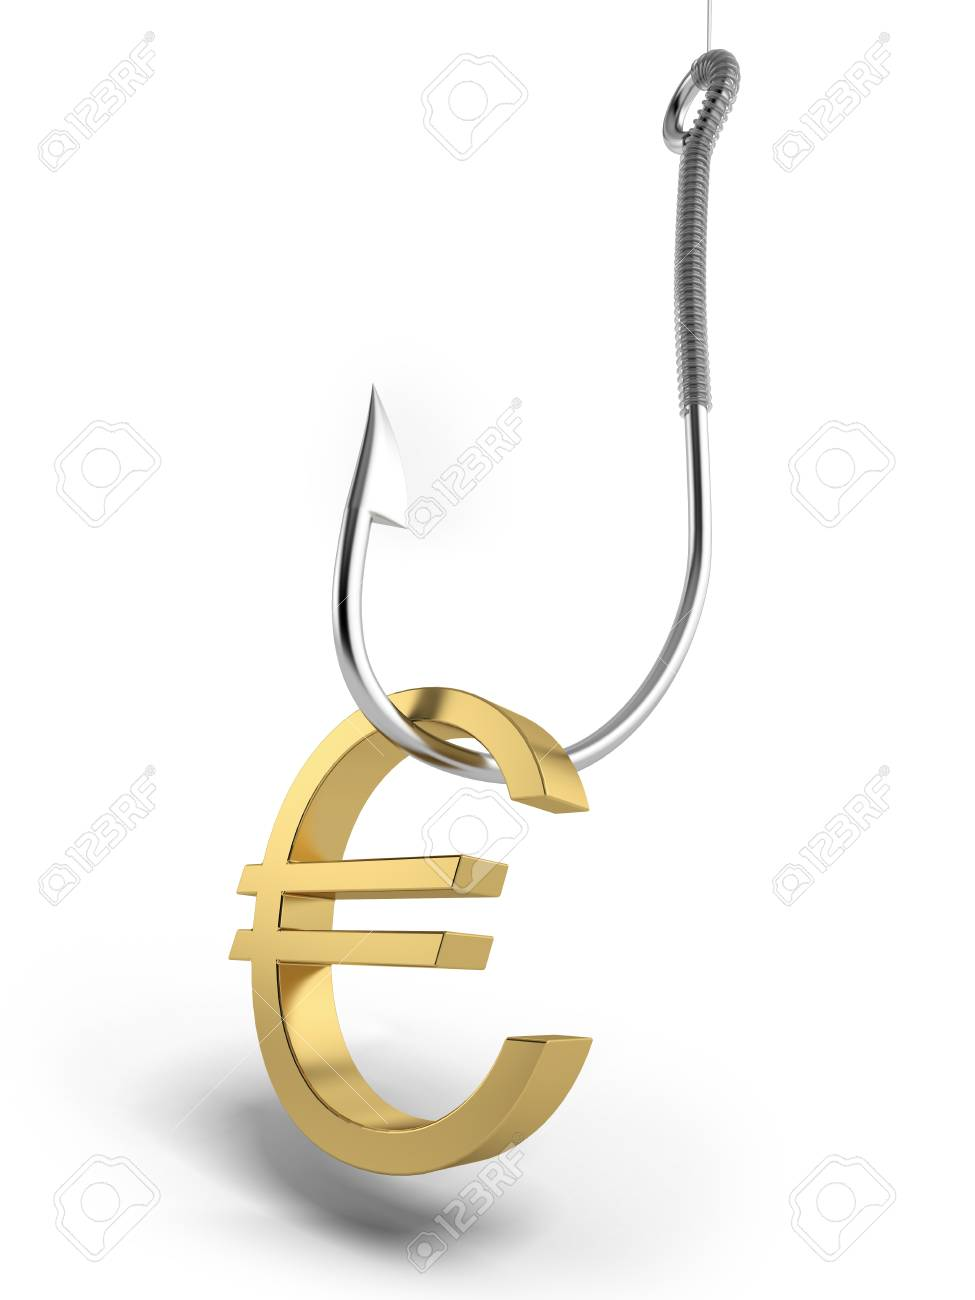 Fishing hook with golden symbol of euro Stock Photo - 16762688